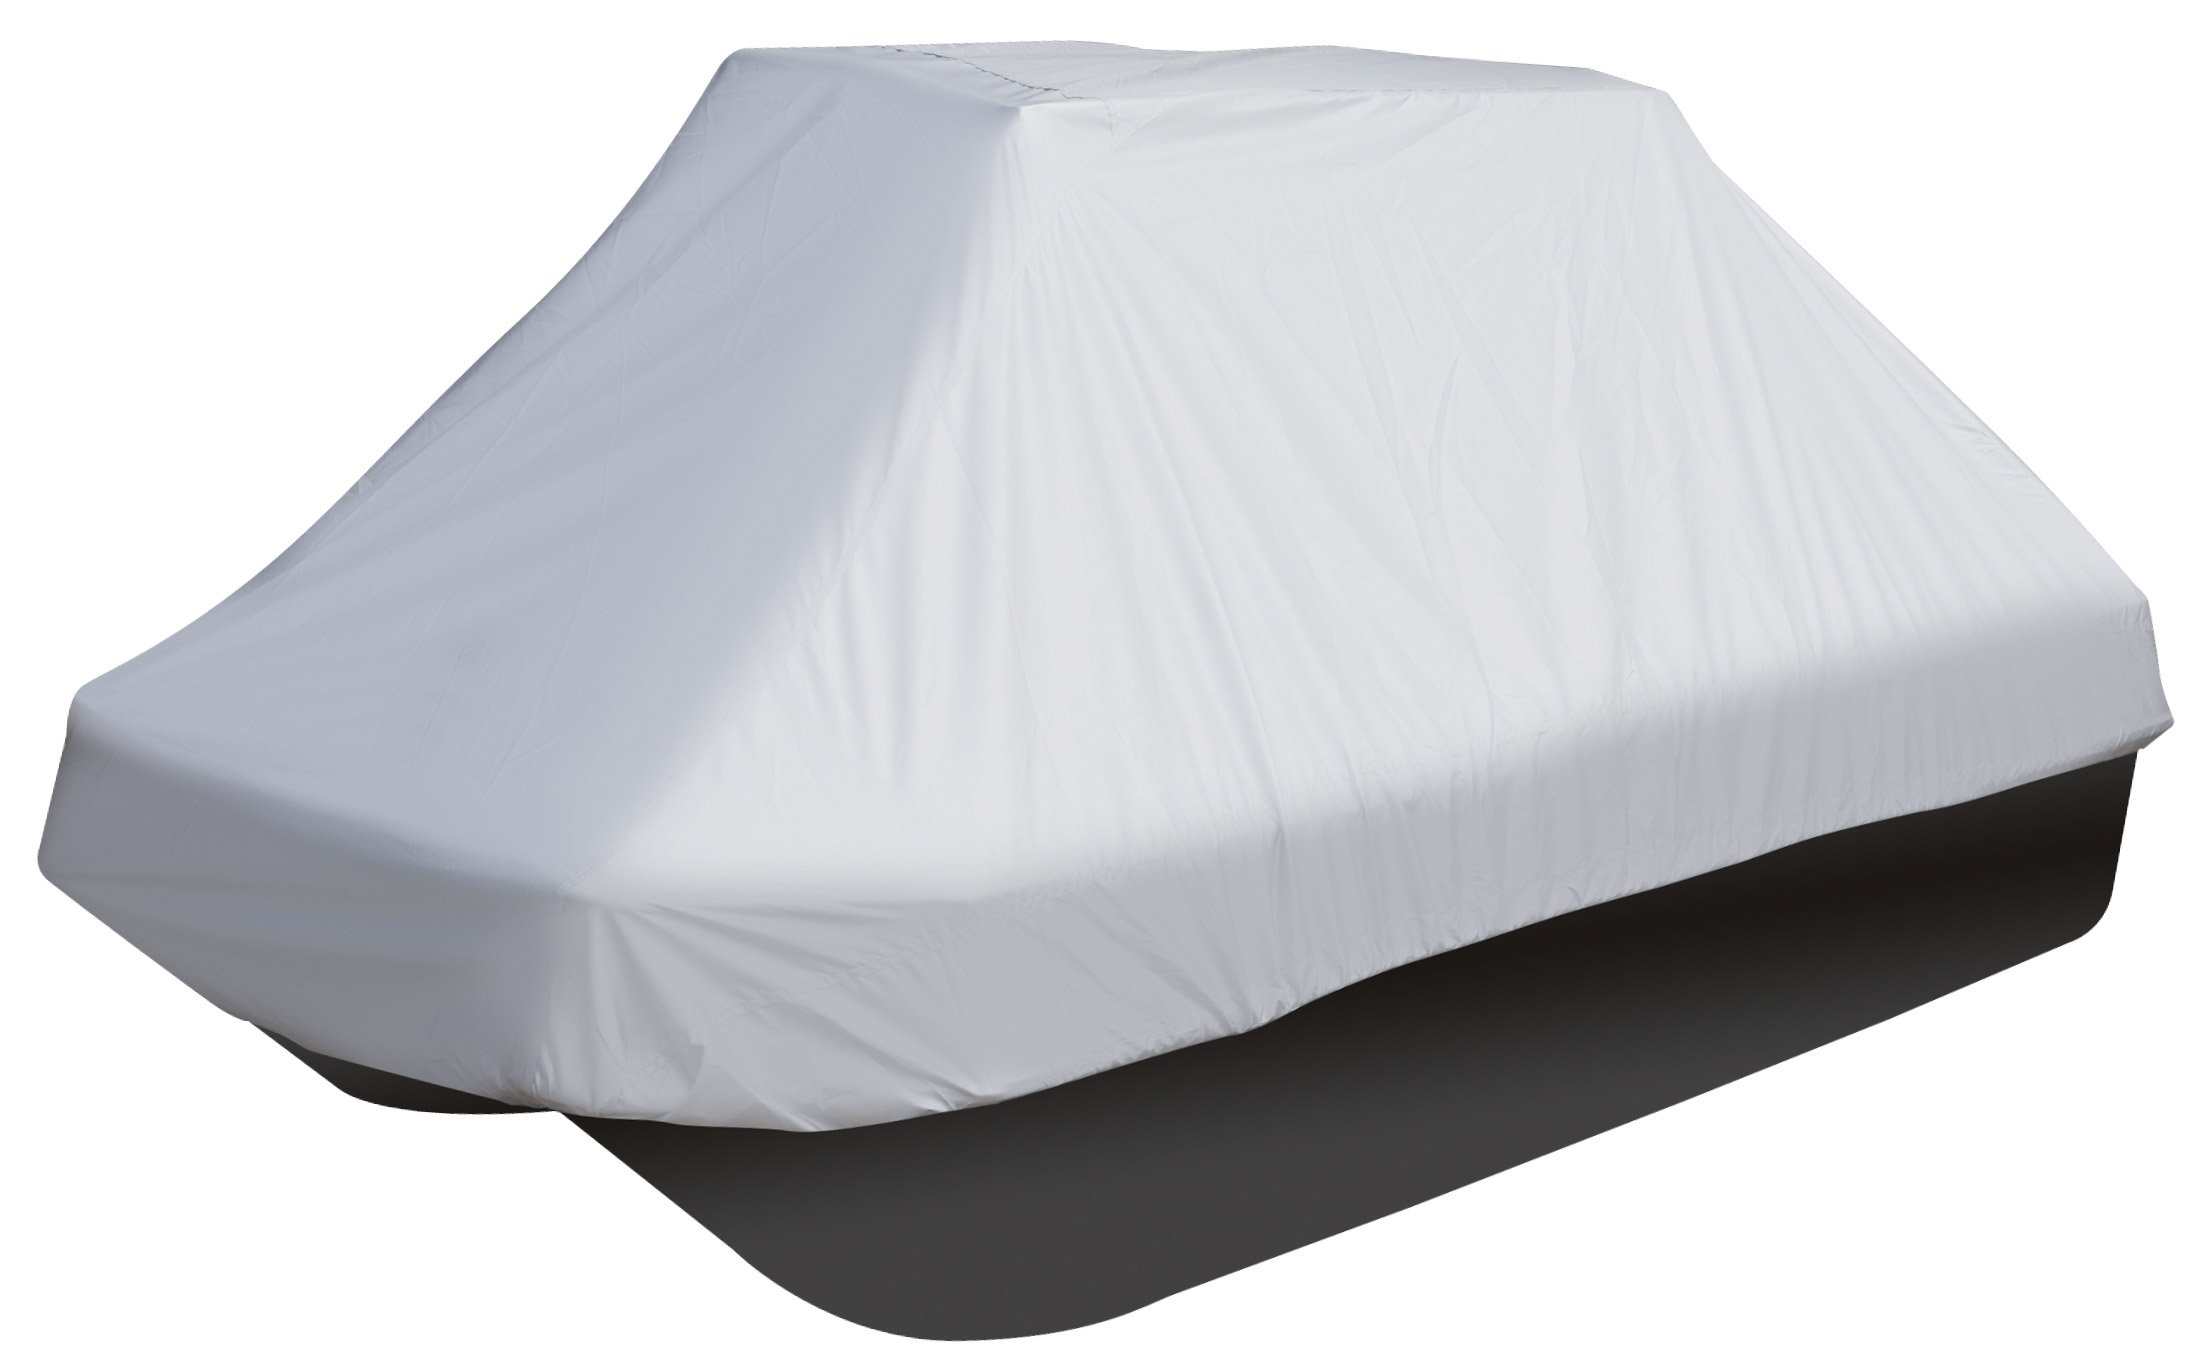 Leader Accessories Molded Pond Boat Cover Fits 8'-10'L Pond or Bass Boats